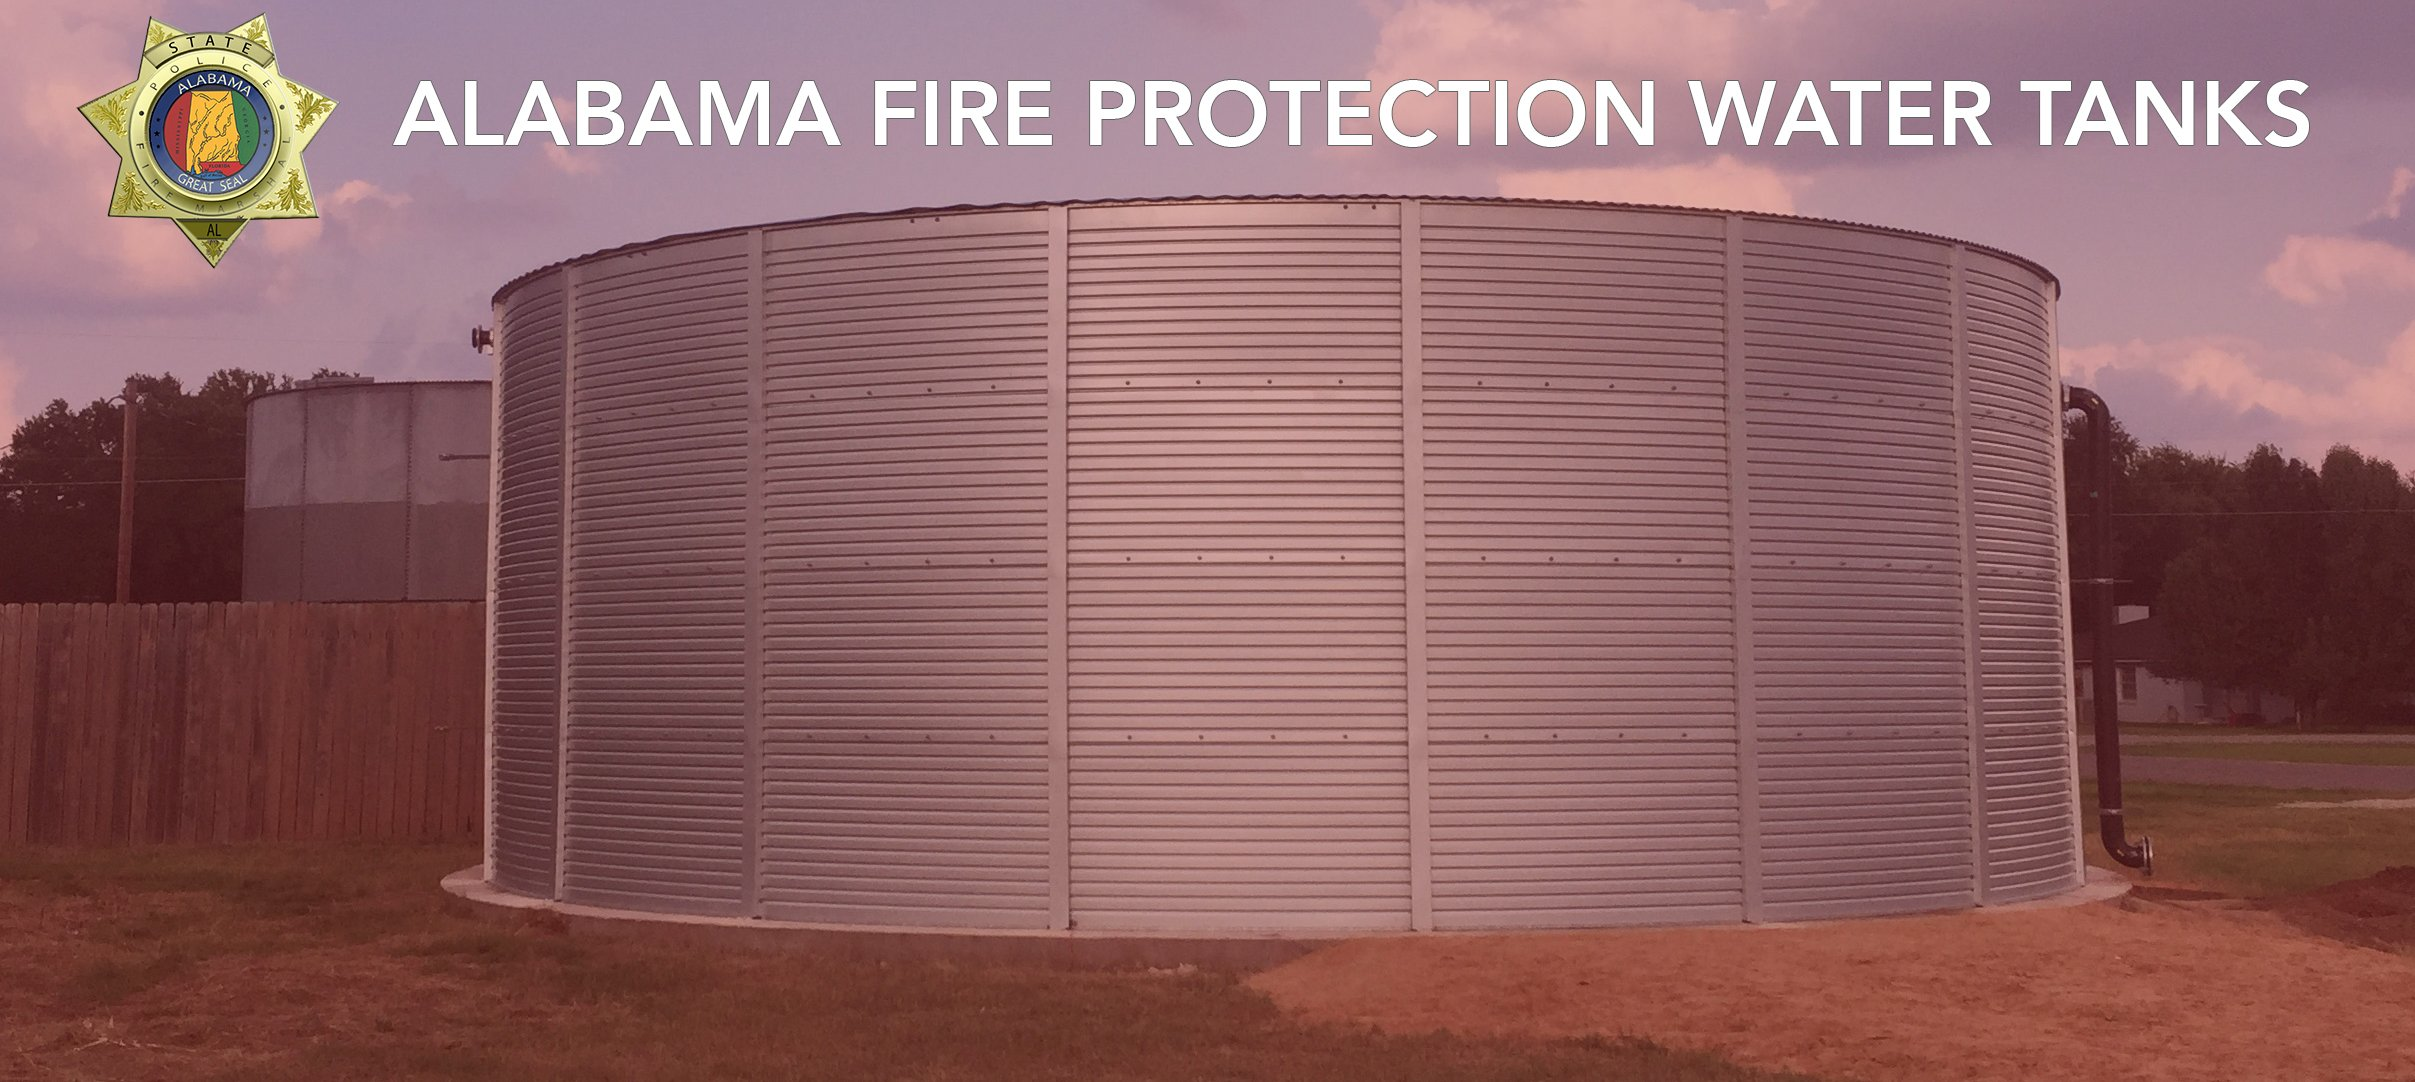 Alabama Fire Protection Water Tanks   Fire Protection Water